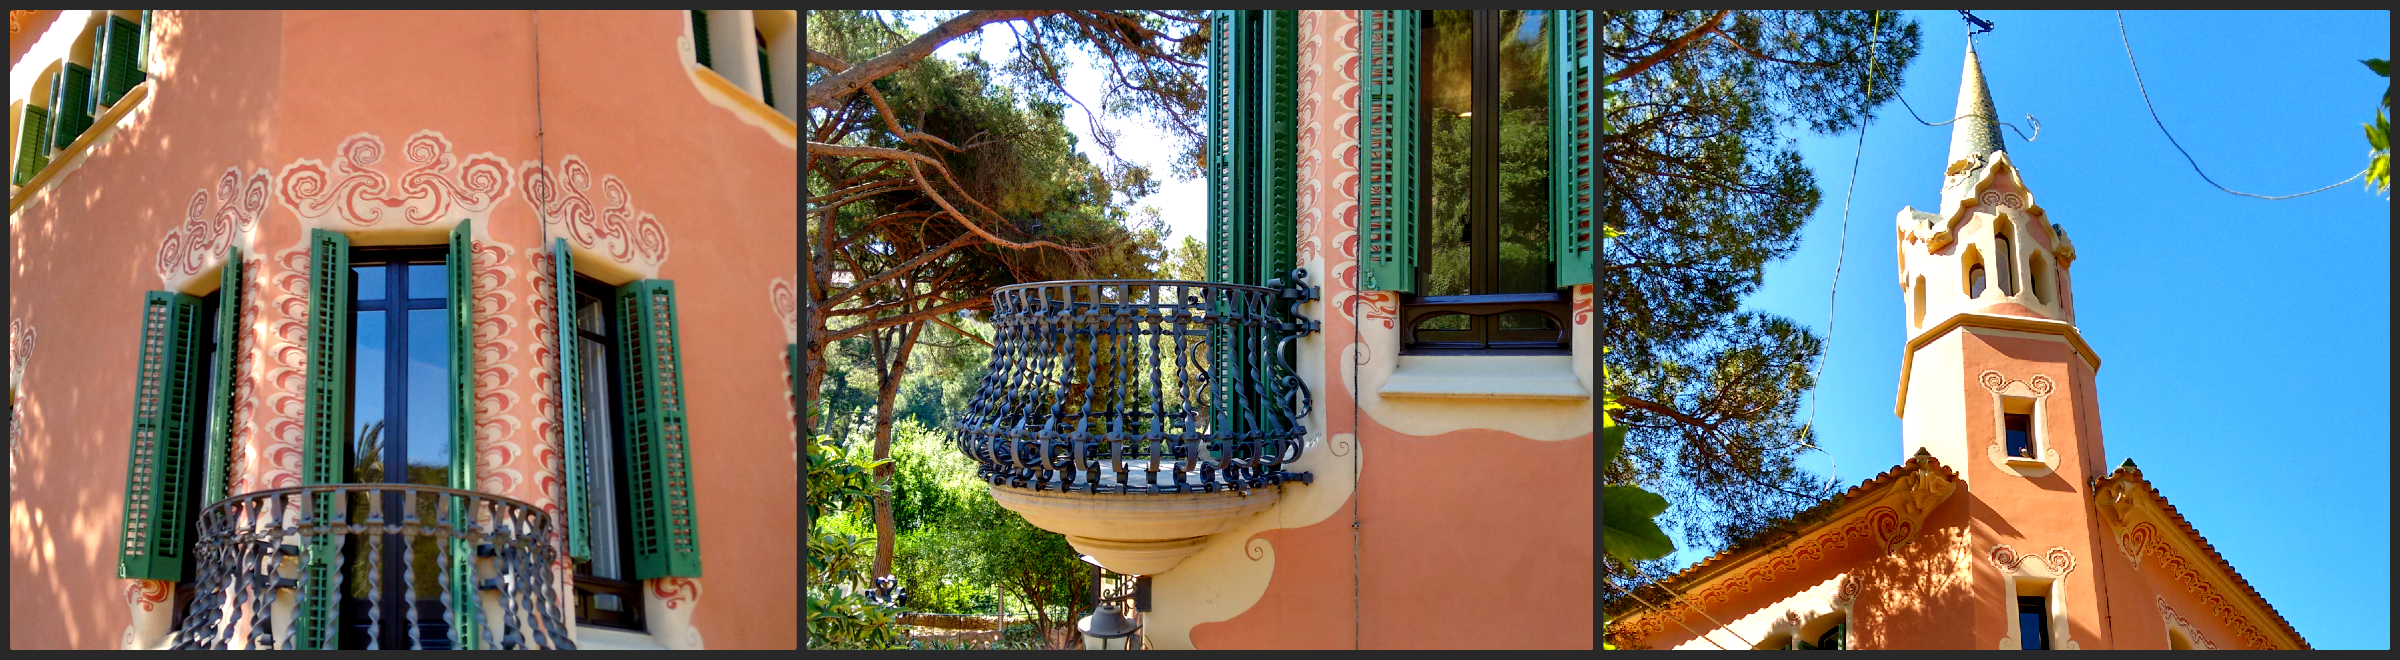 Antoni Gaudi's house inside Parc Guell (This little balcony is kinda cute)